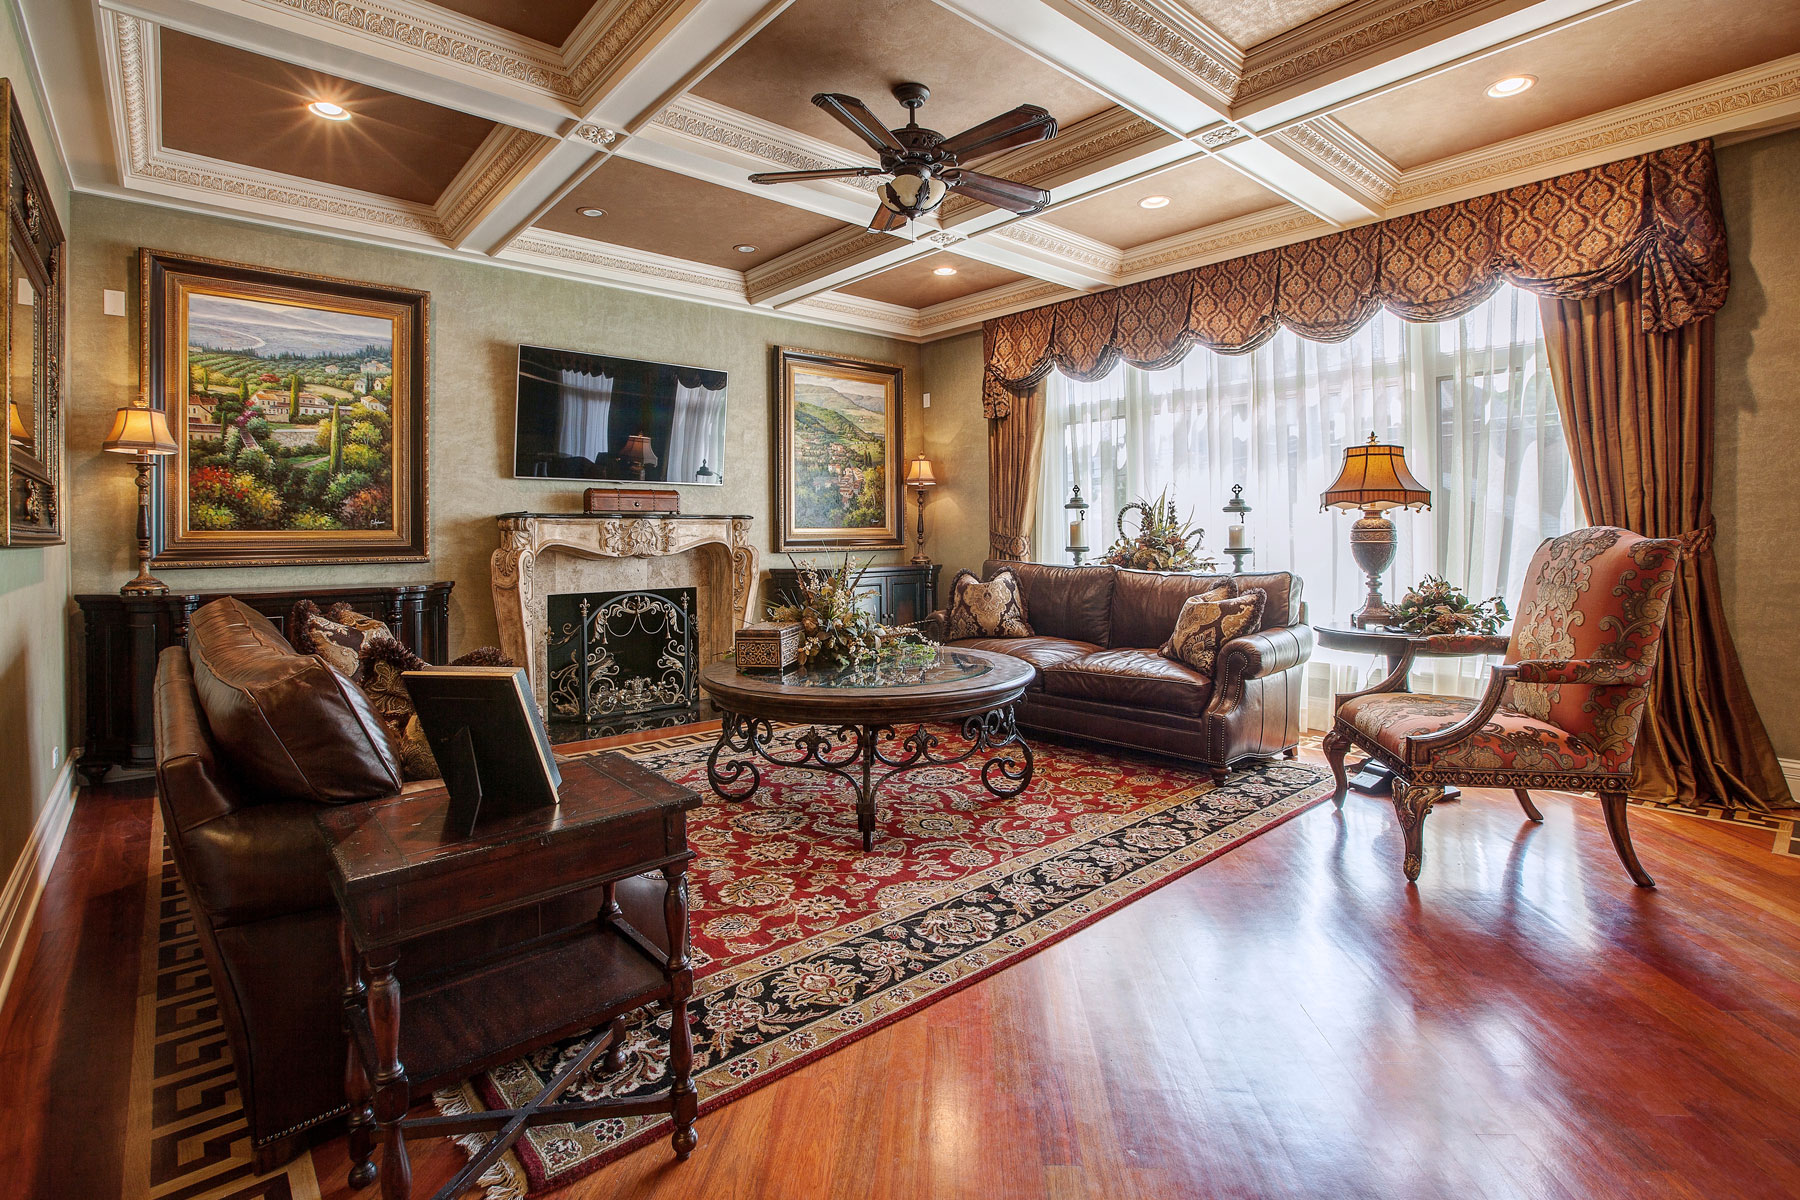 Living Room and Family Room Design - Linly Designs on Room Decor Photos  id=33751